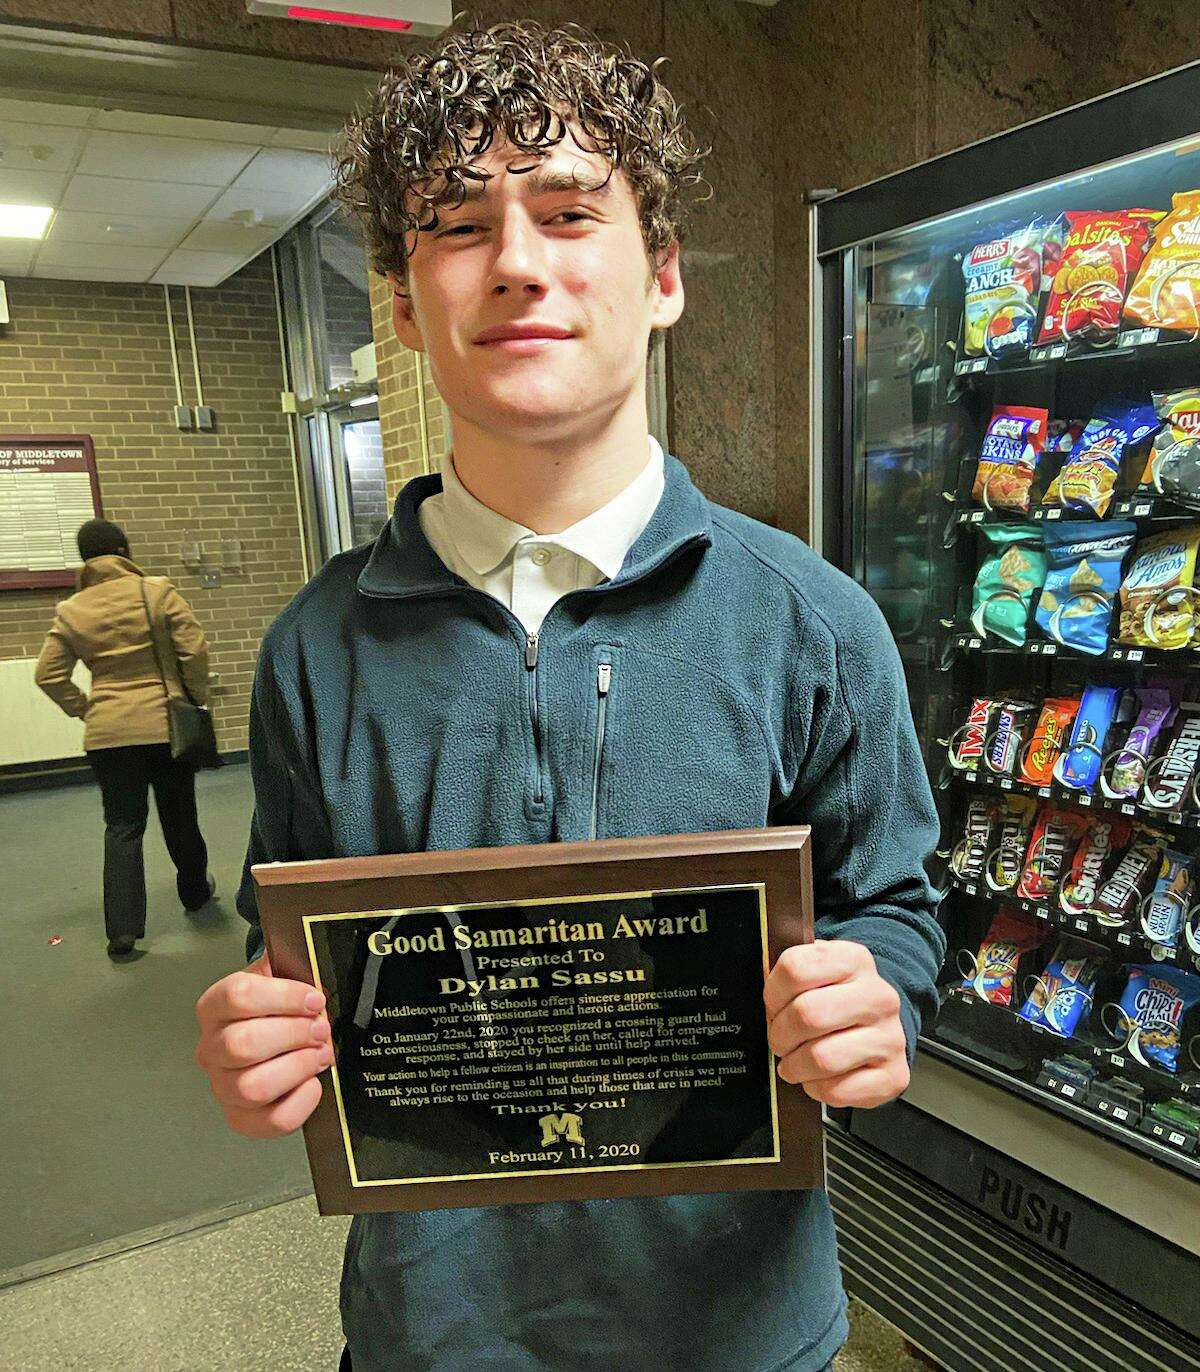 Middletown teen credited with saving crossing guard's life Dylan Sassu, 17, was dropping off a friend at Woodrow Wilson Middle School at about 2:30 p.m. Jan. 22 when he came upon crossing guard Catherine Russo, who had fallen and was lying face down.